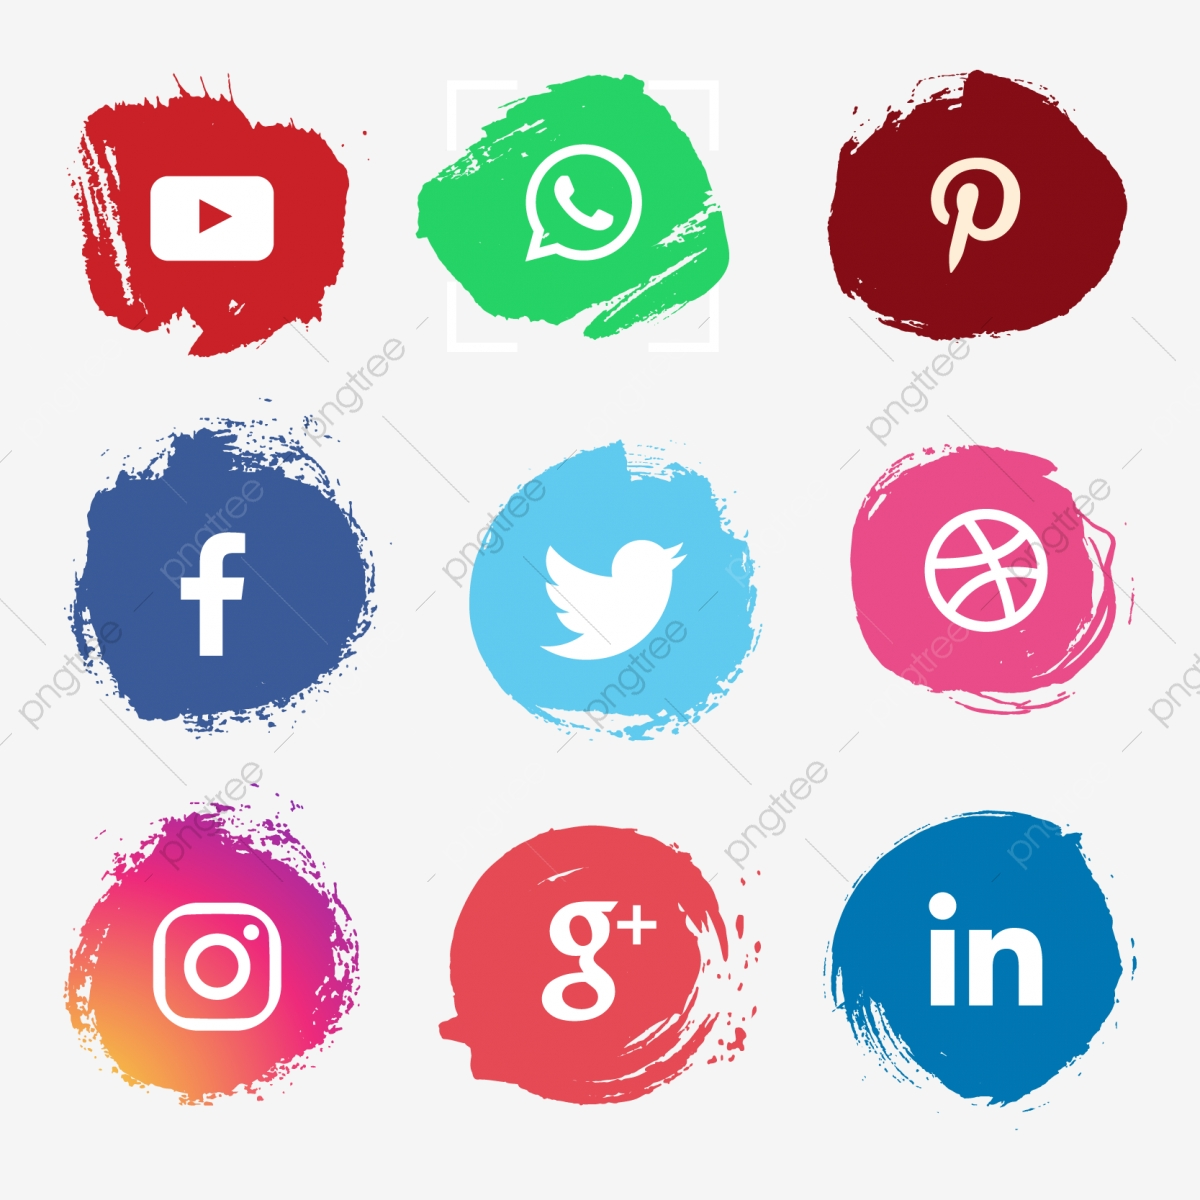 Social Media Icon Pack Instagram Ig Boomerang Png And Vector With Transparent Background For Free Download